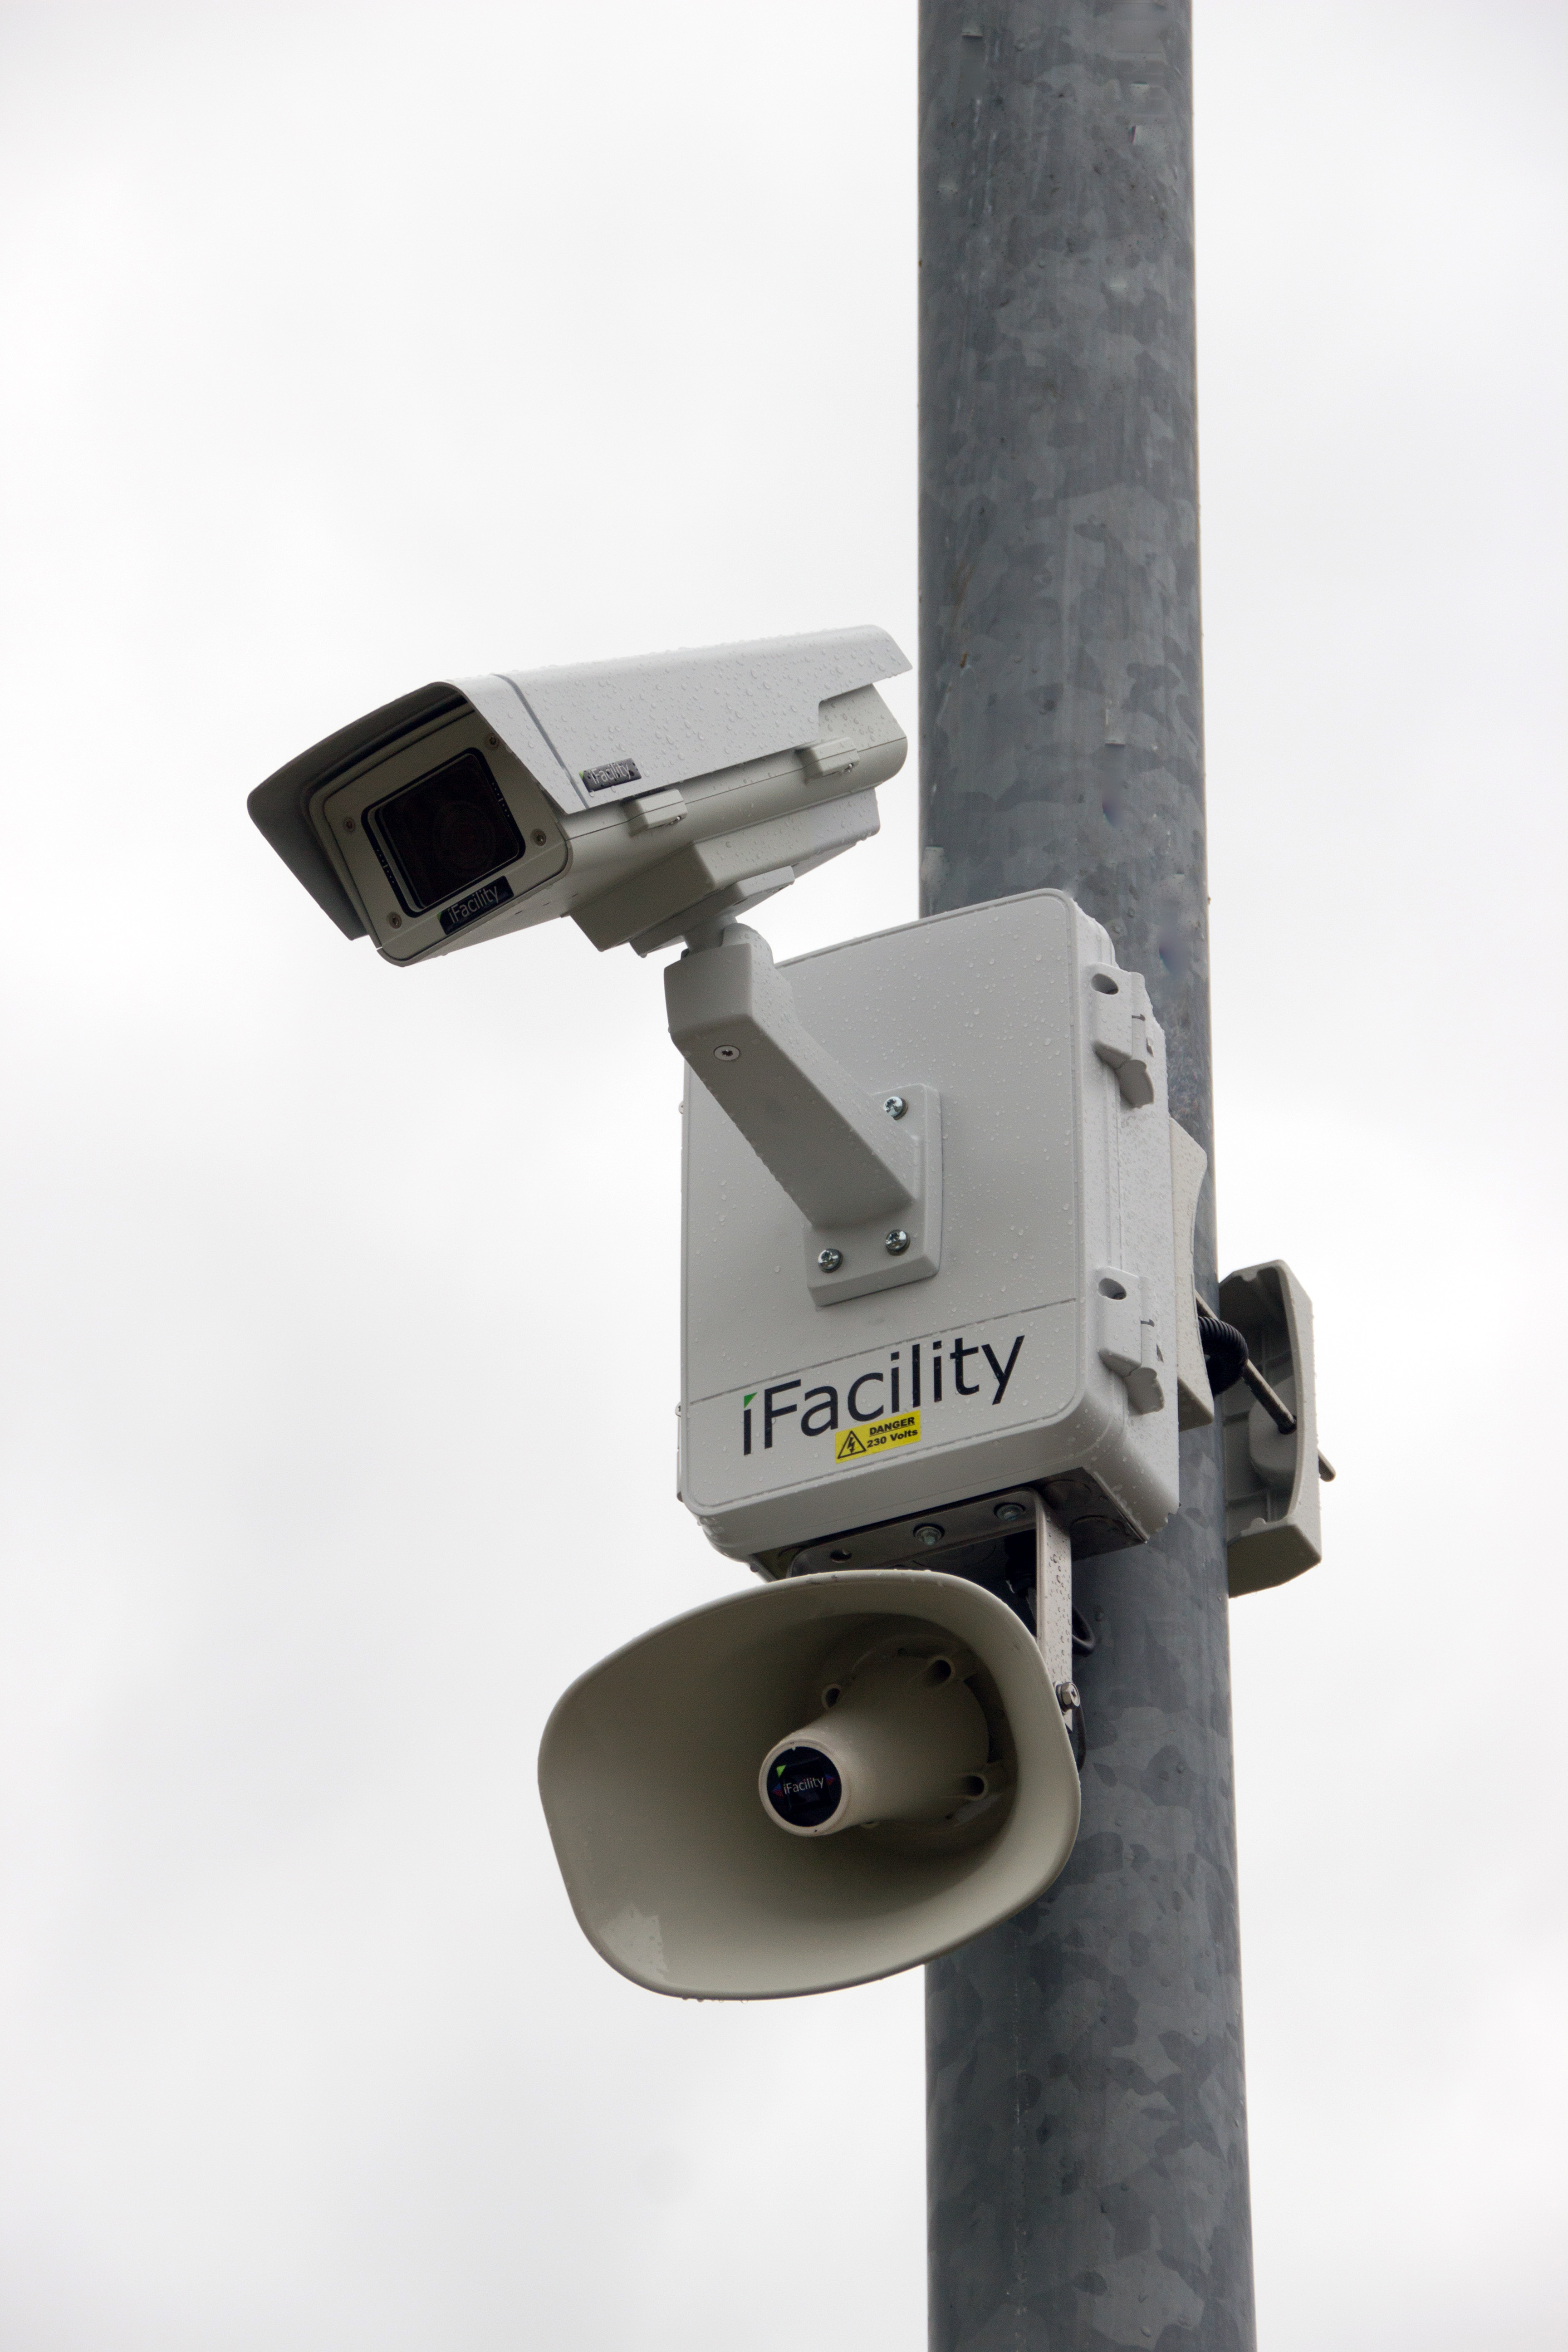 Design Your Own Mobile Home Online File Cctv Camera And Ifacility Ip Audio Speaker On A Pole